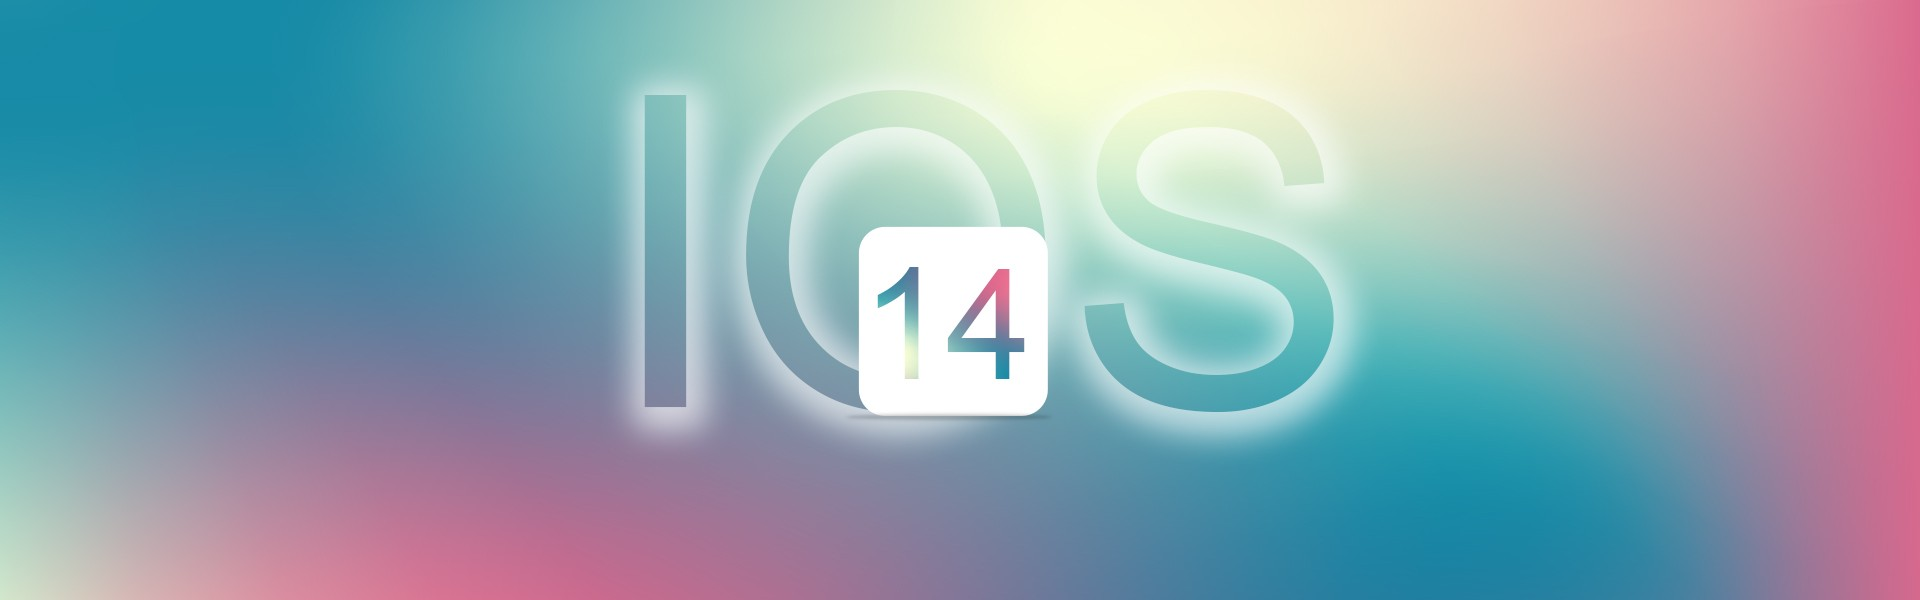 iOS-14-New-Amazing-Features-for-a-better-iPhone-Experience_banner